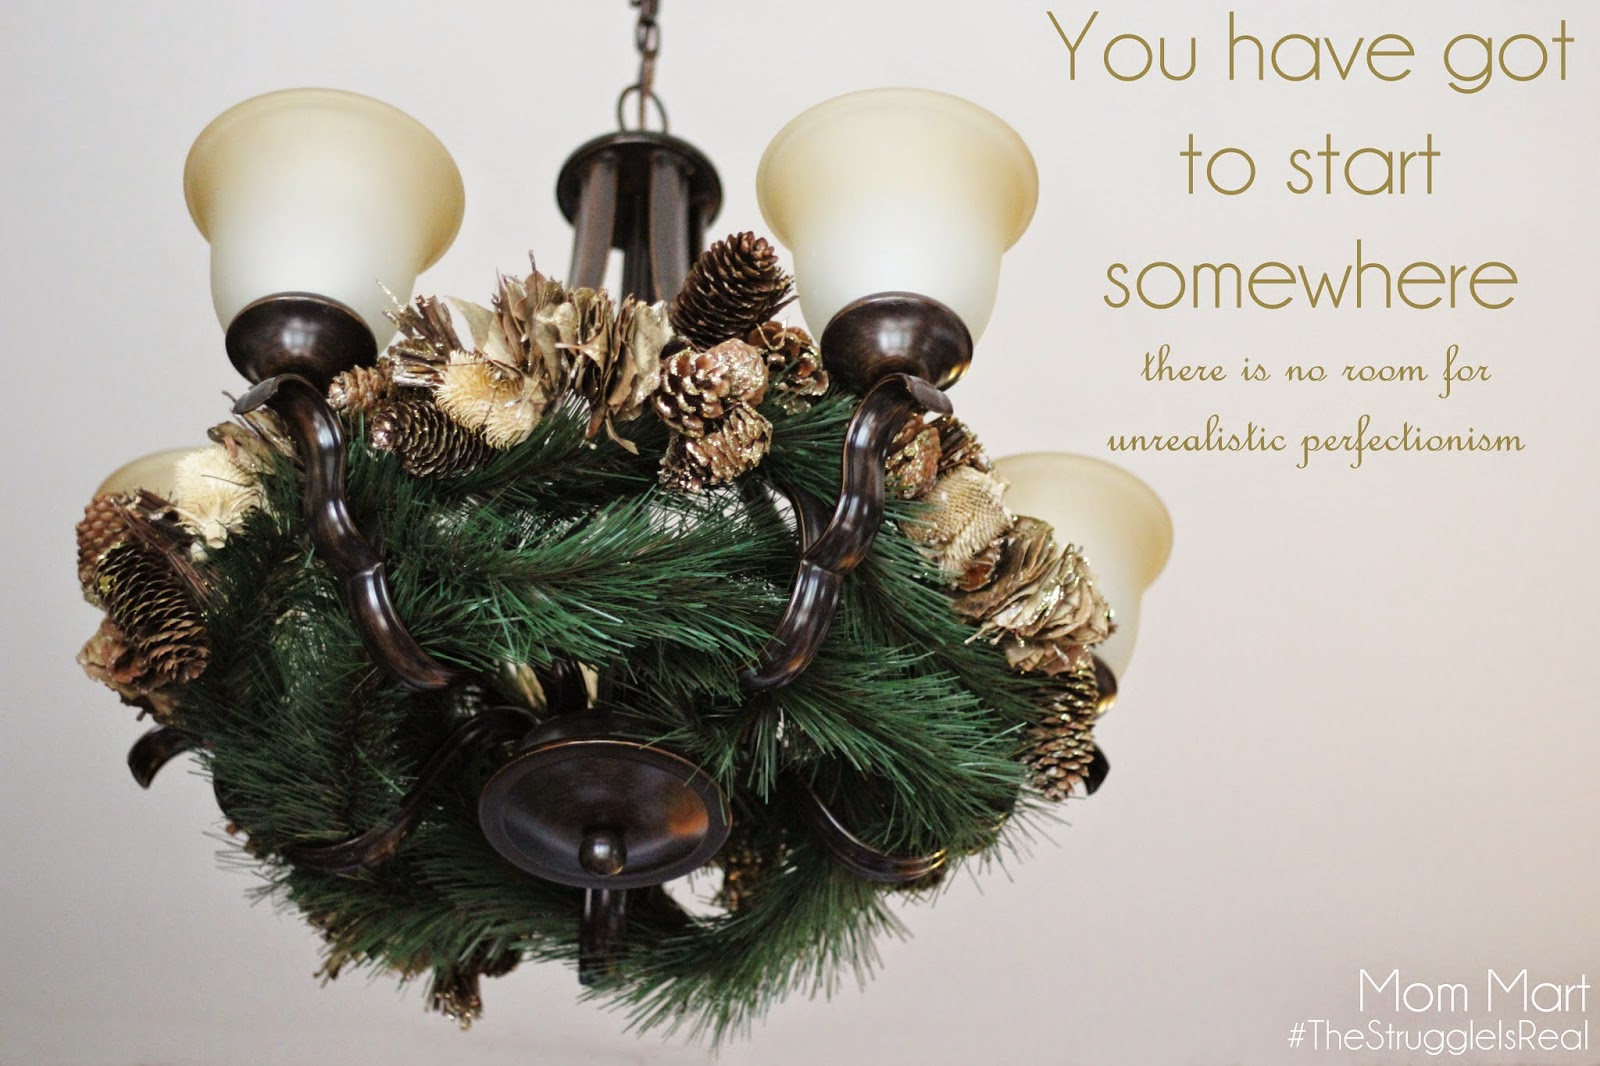 You have to start somewhere. Decorating for the holidays with perfection in mind. #TheStruggleIsReal